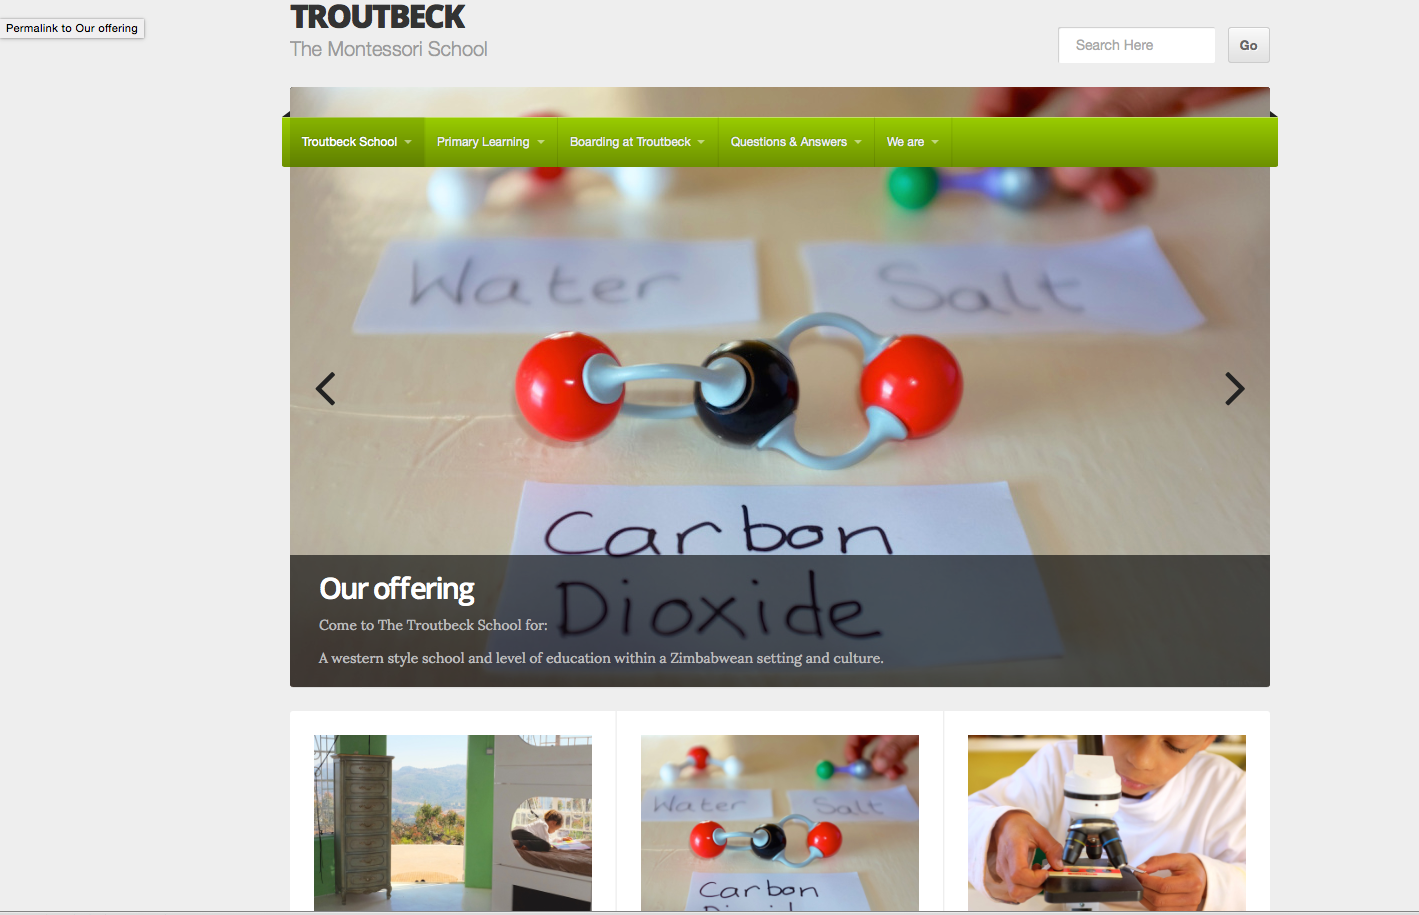 The Troutbeck School.com